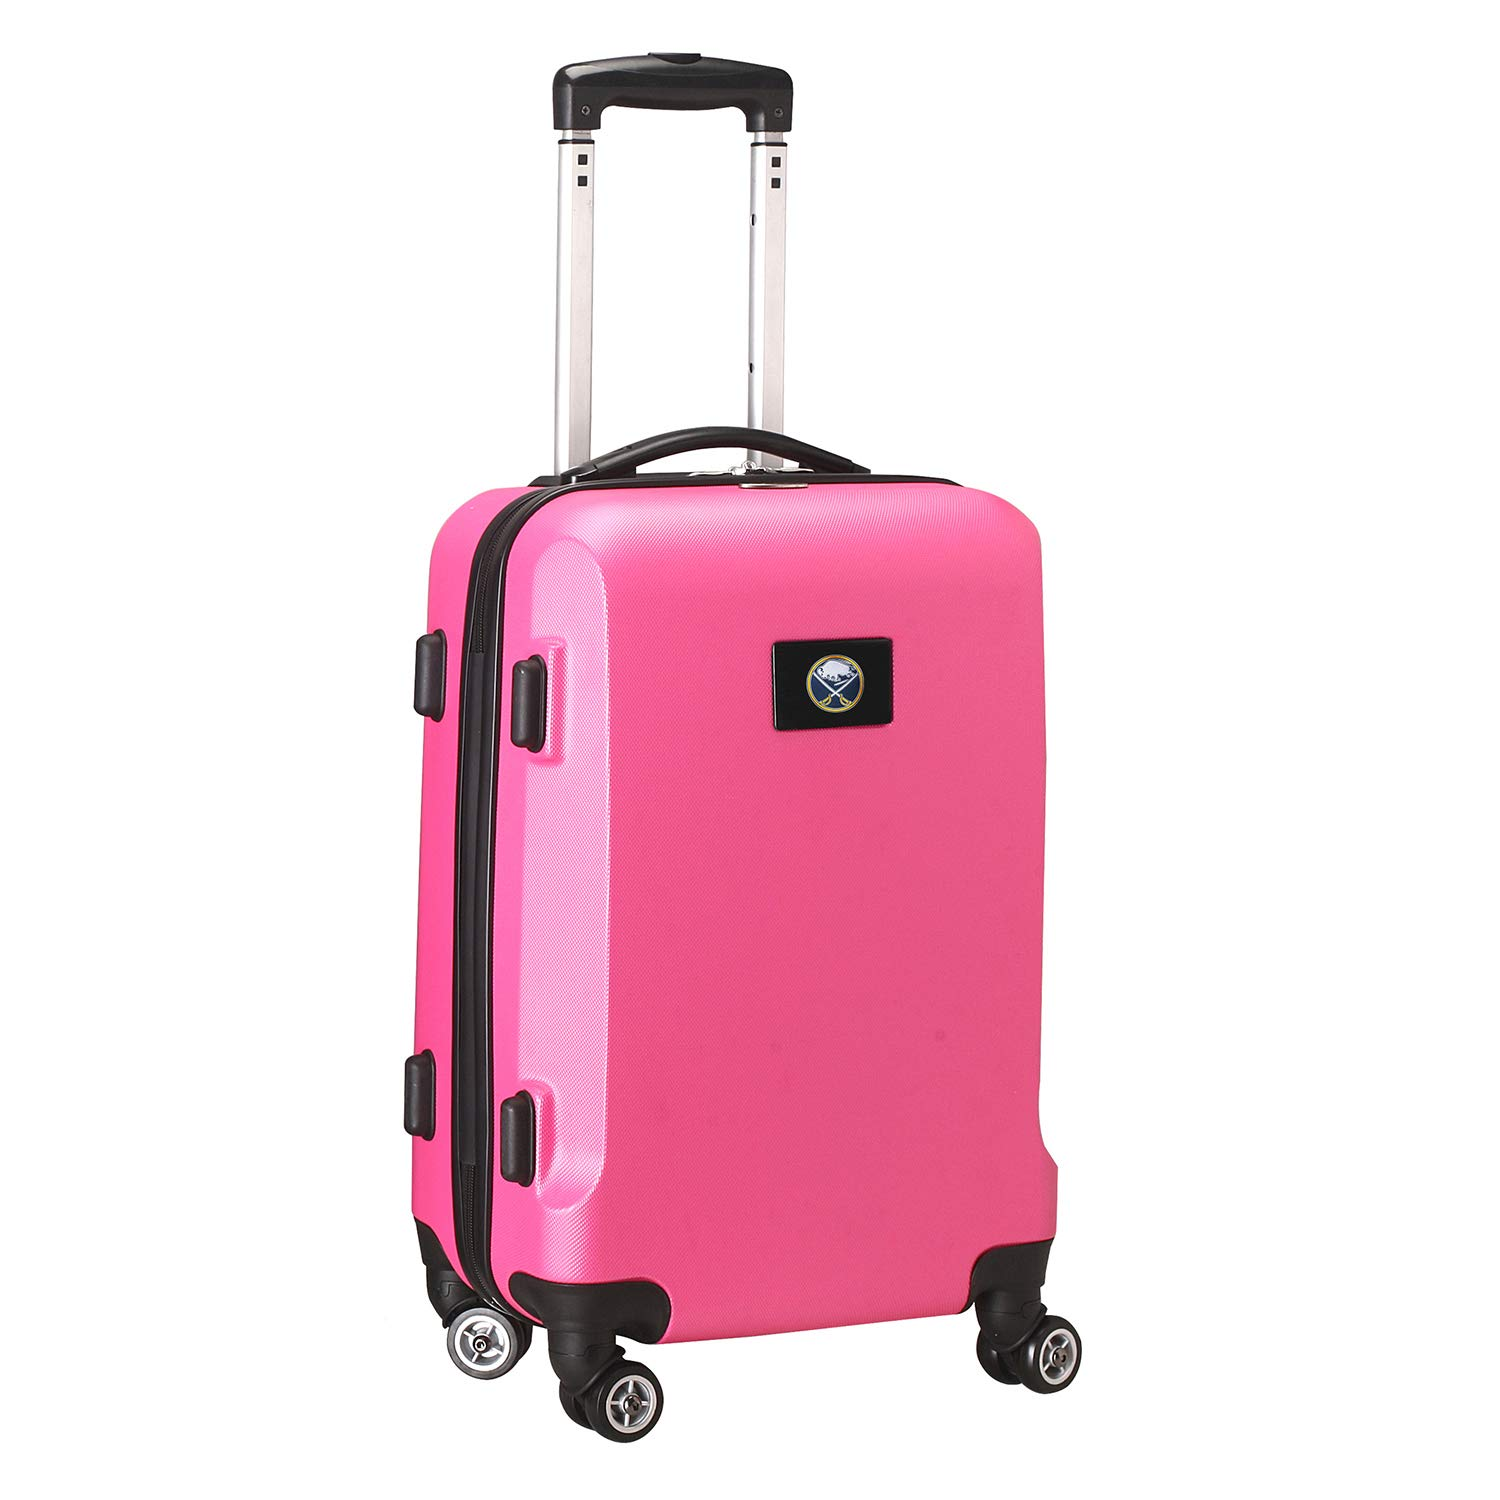 Denco NHL Buffalo Sabres Carry-On Hardcase Luggage Spinner, Pink